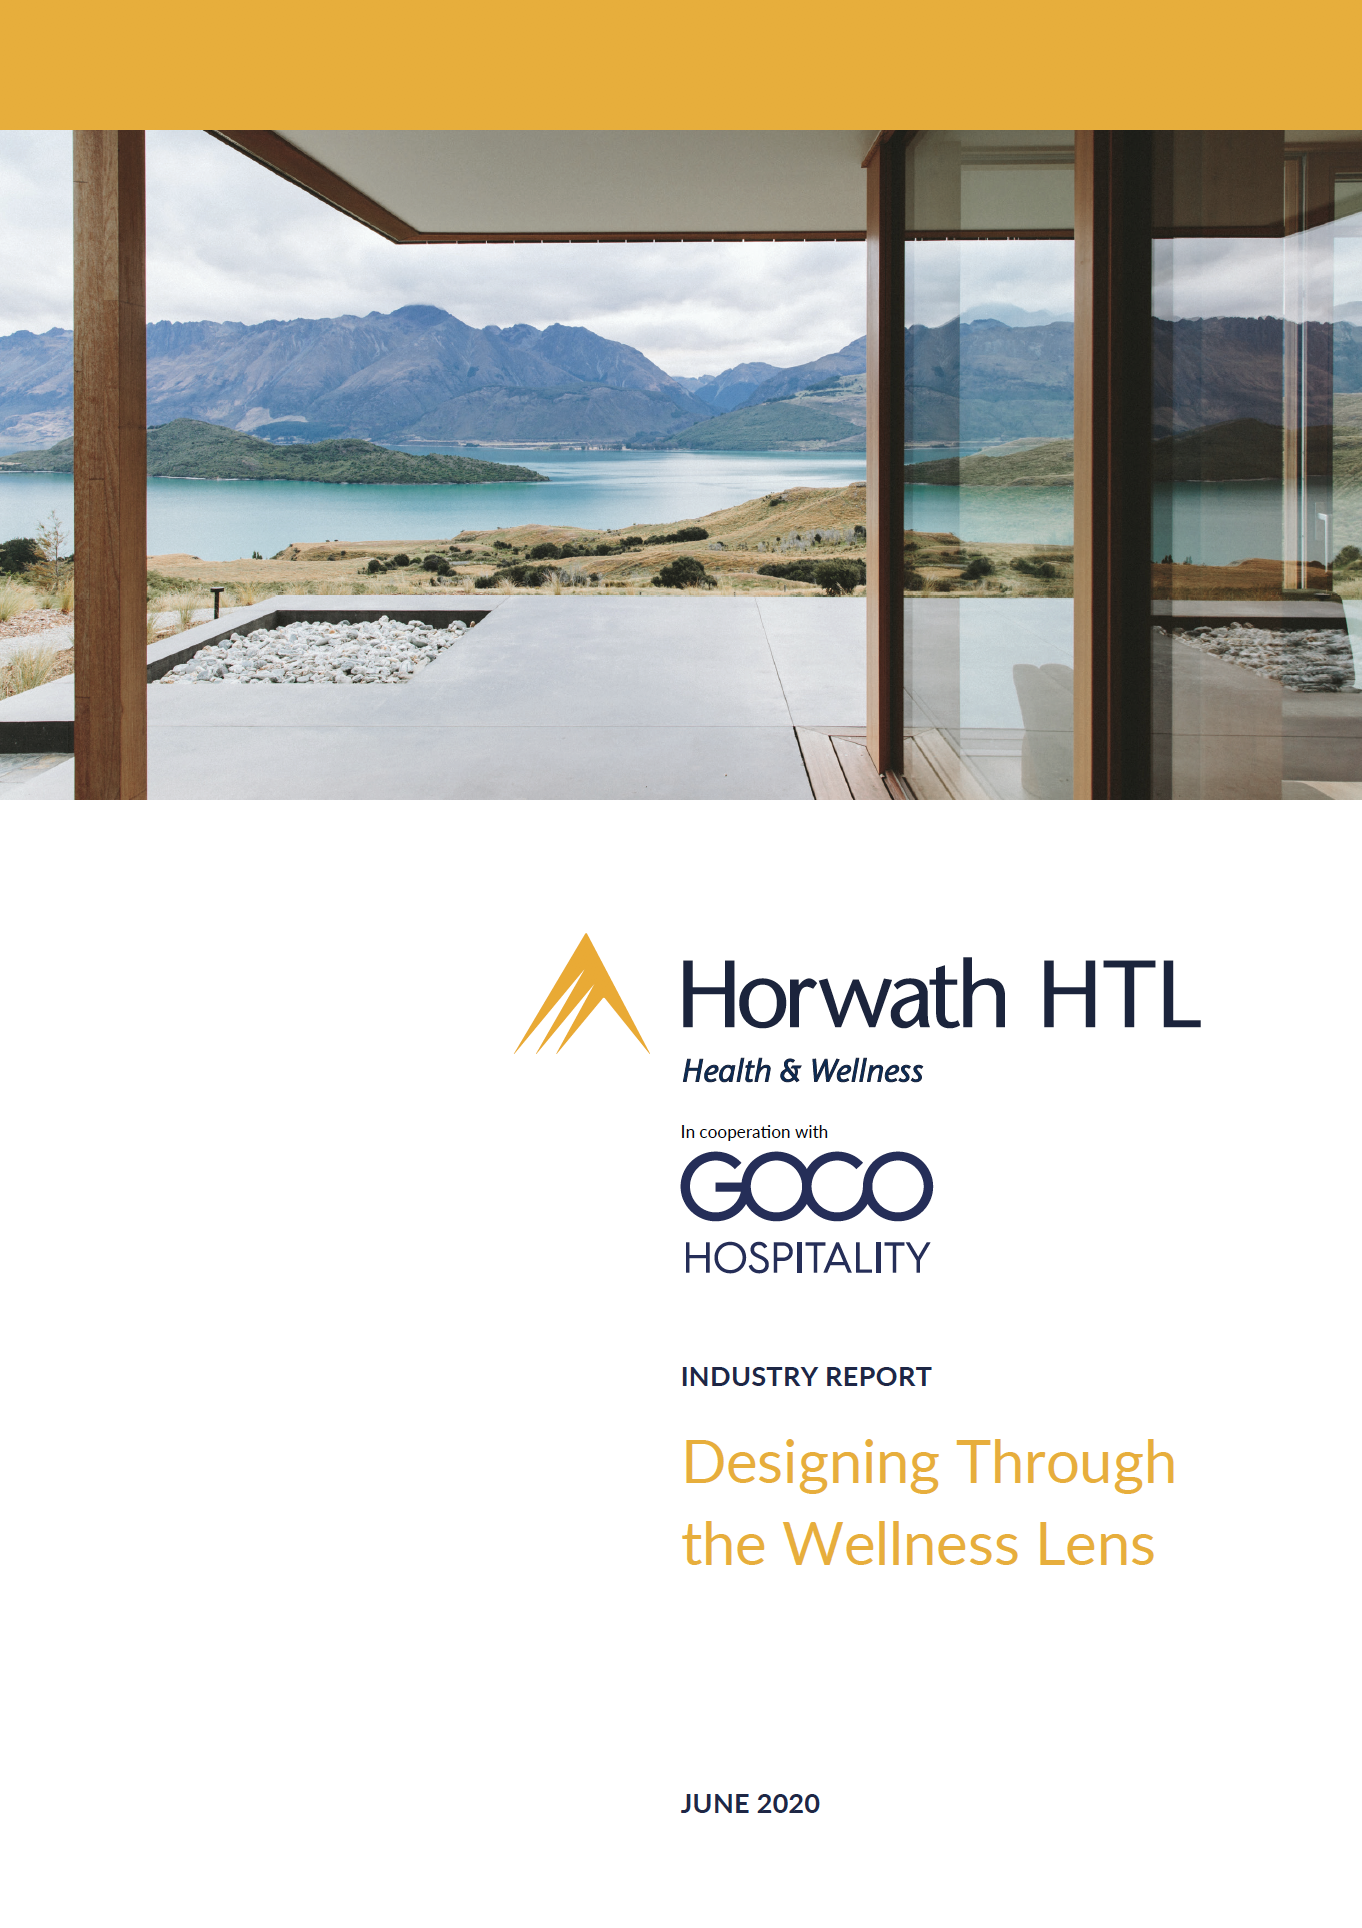 Industry Report: Designing through the Wellness Lens